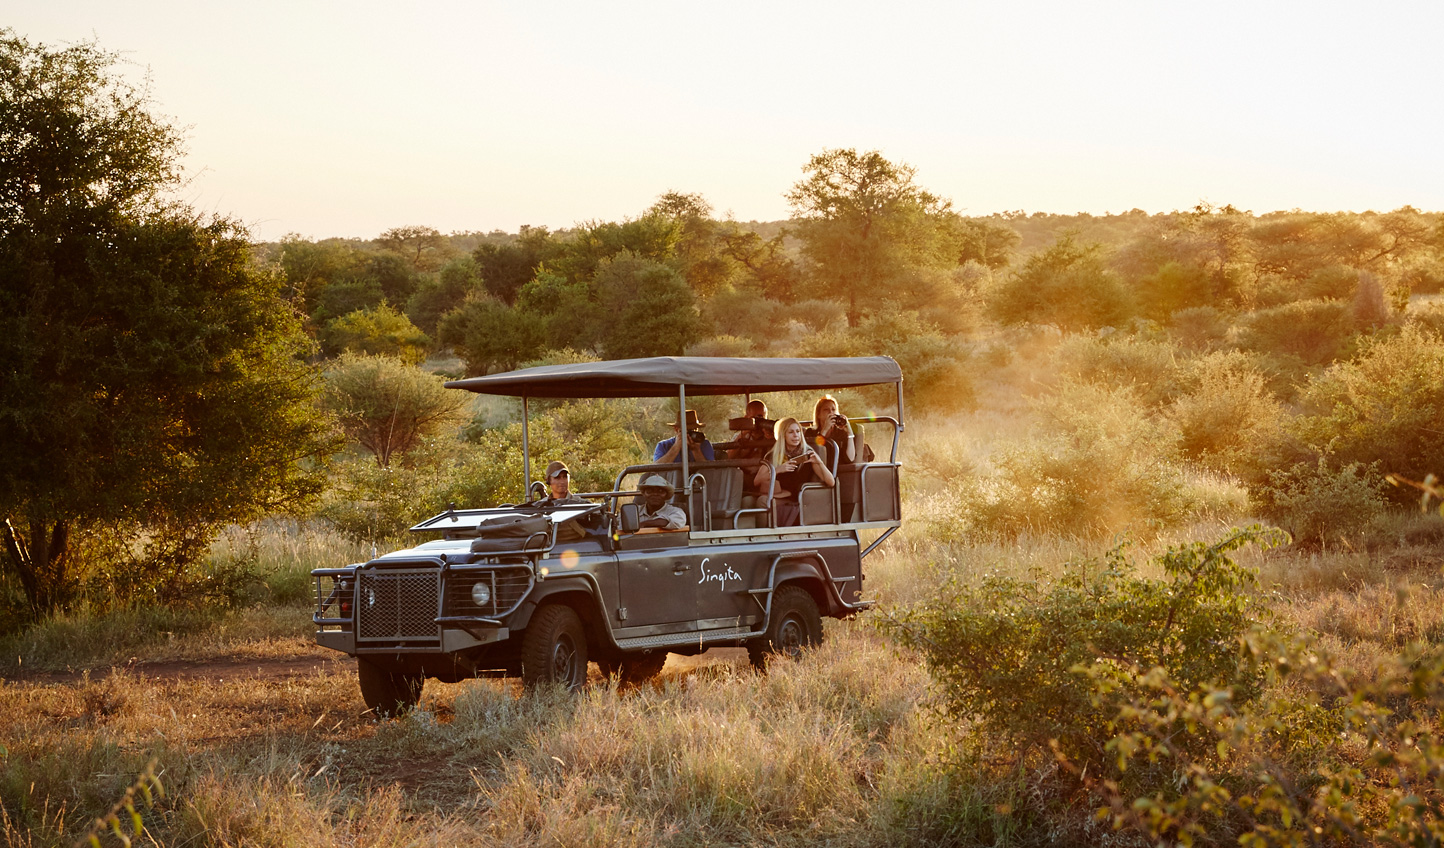 Set off on a game drive through the plains - with noone else in sight